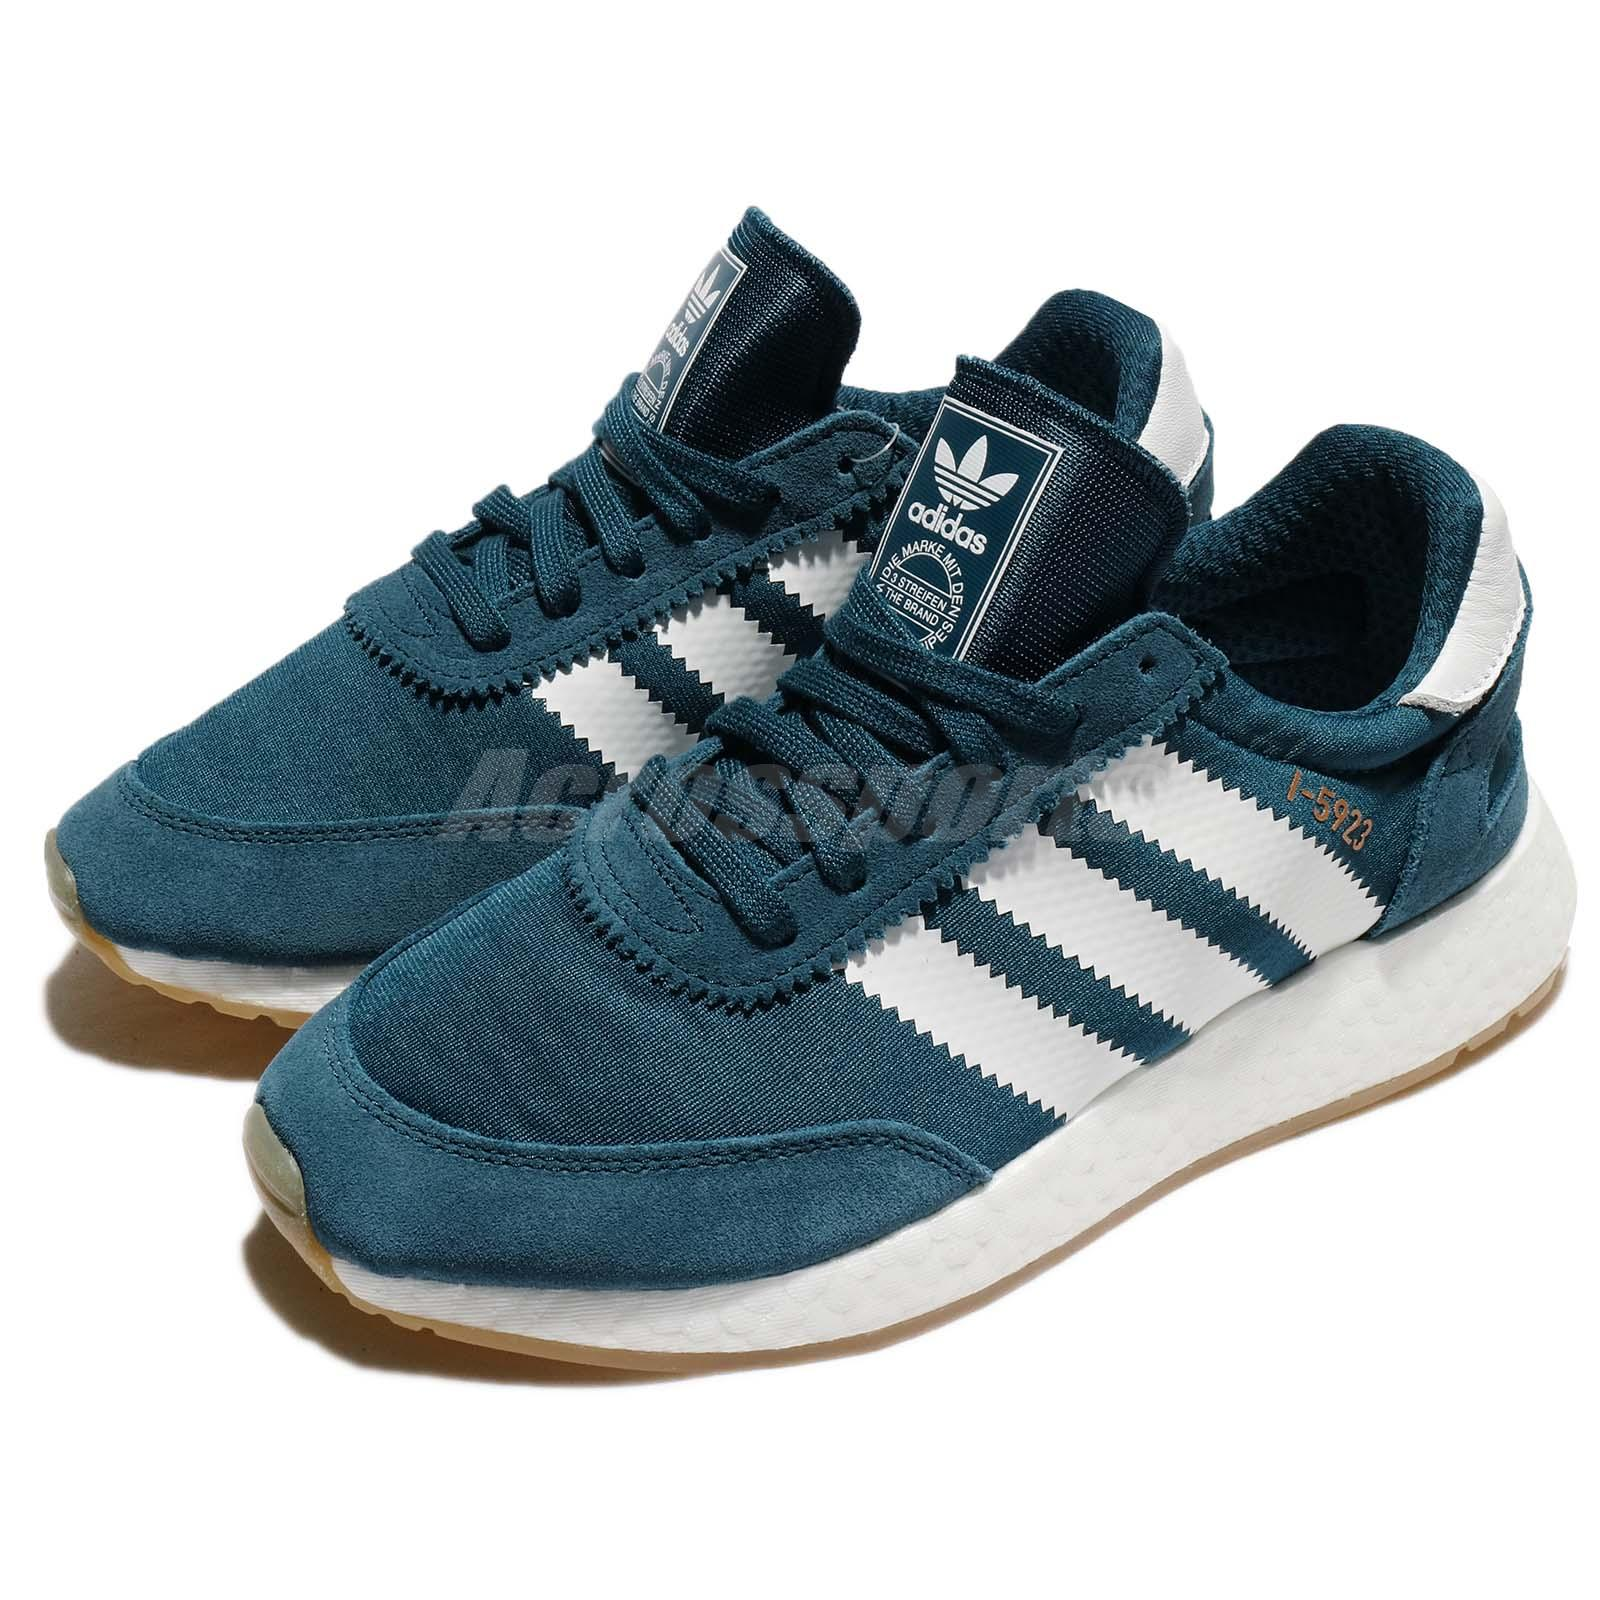 adidas Originals I-5923 W Boost Blue White Women Running Shoes Sneakers CQ2529